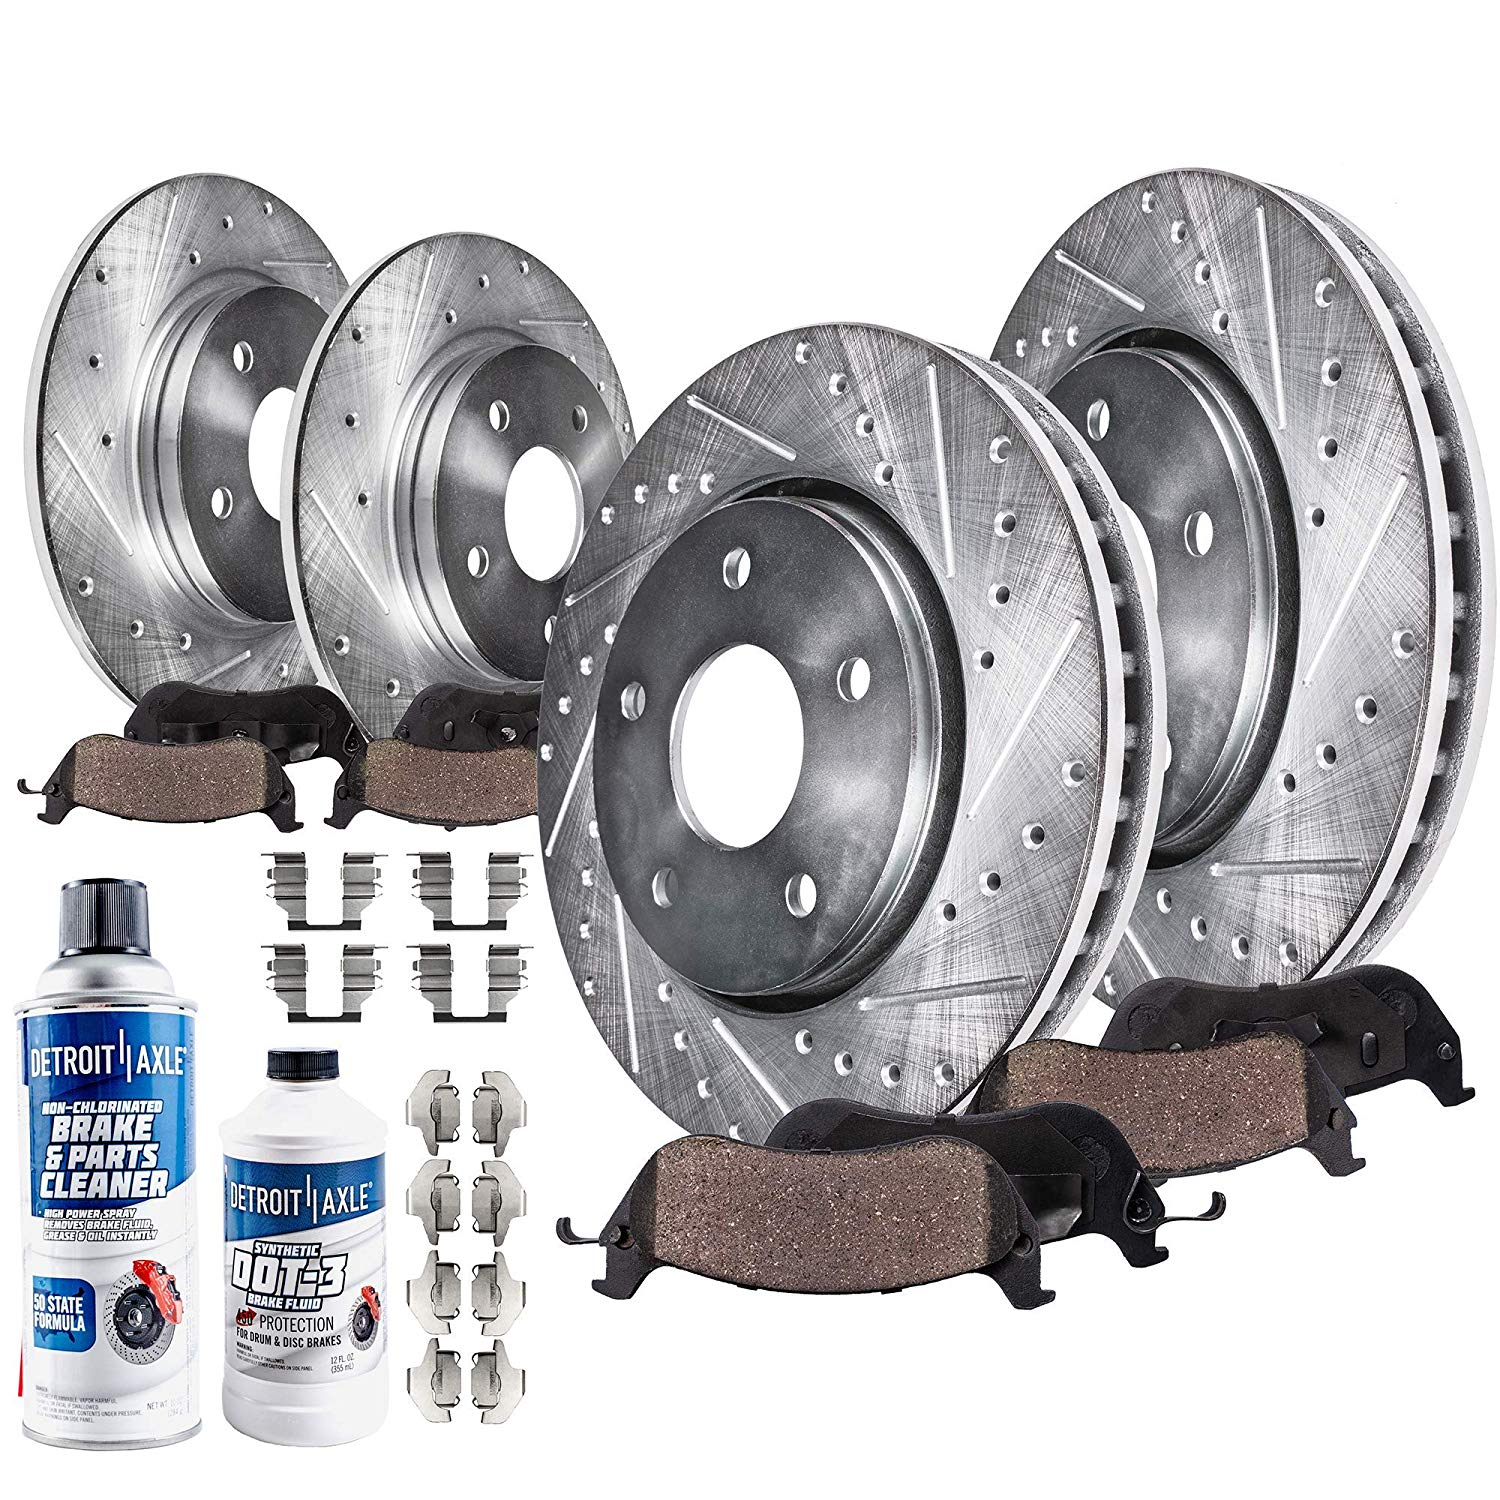 Drilled and Slotted Front / Rear Brakes Kit Rotors + Pads - Single Piston Caliper Models